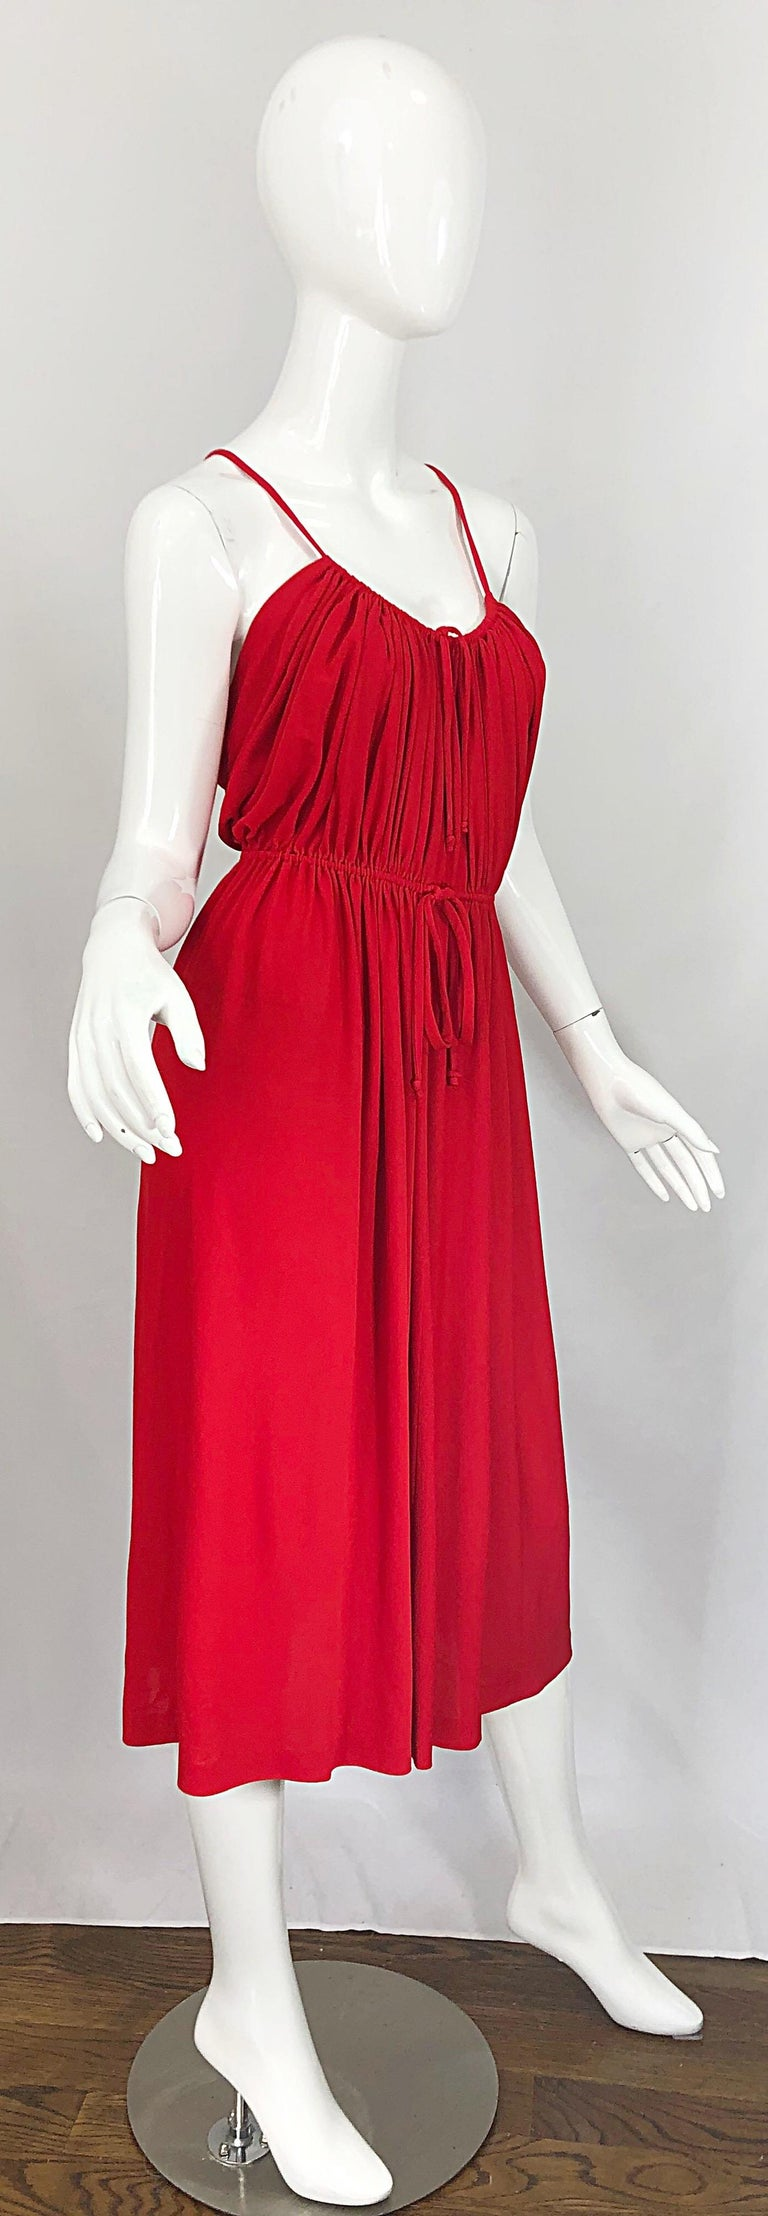 1970s Loris Azzaro Crimson Red Silk Jersey Grecian Inspired Vintage 70s Dress For Sale 1